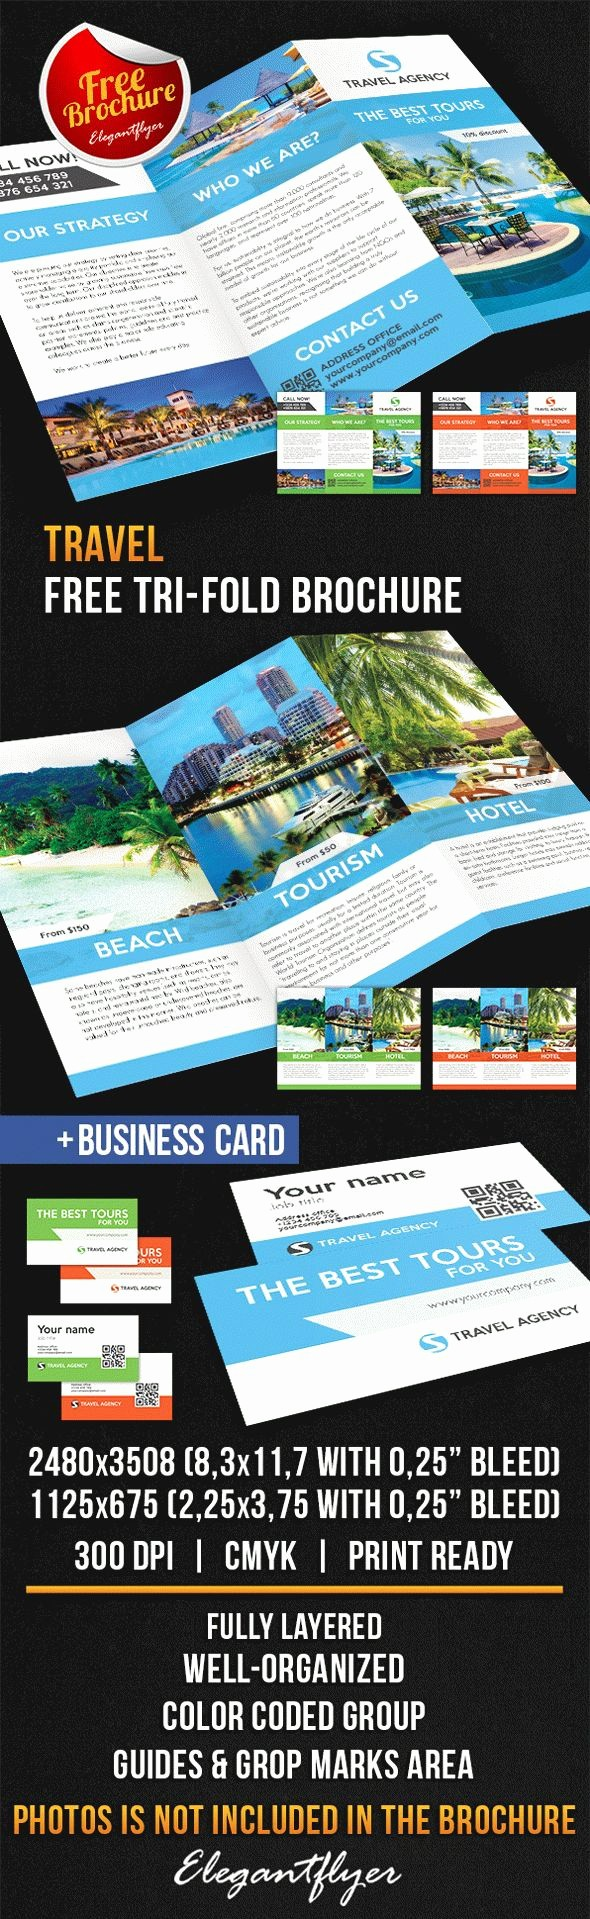 Tri Fold Travel Brochure Examples Beautiful Travel Tri Fold Brochure – Free Psd Template – by Elegantflyer